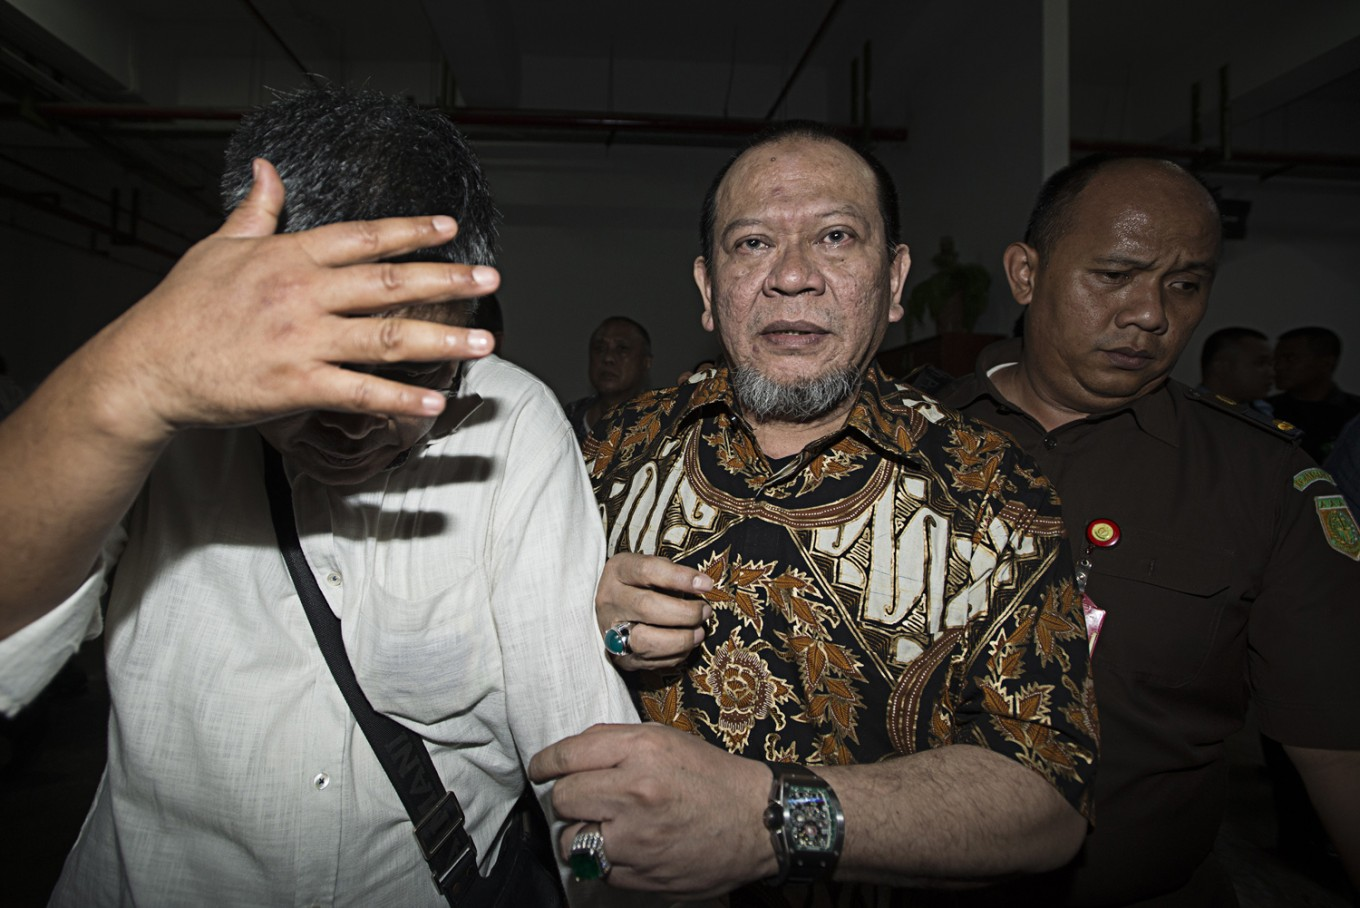 It's official: Indonesia has arrived at its Trumpian moment